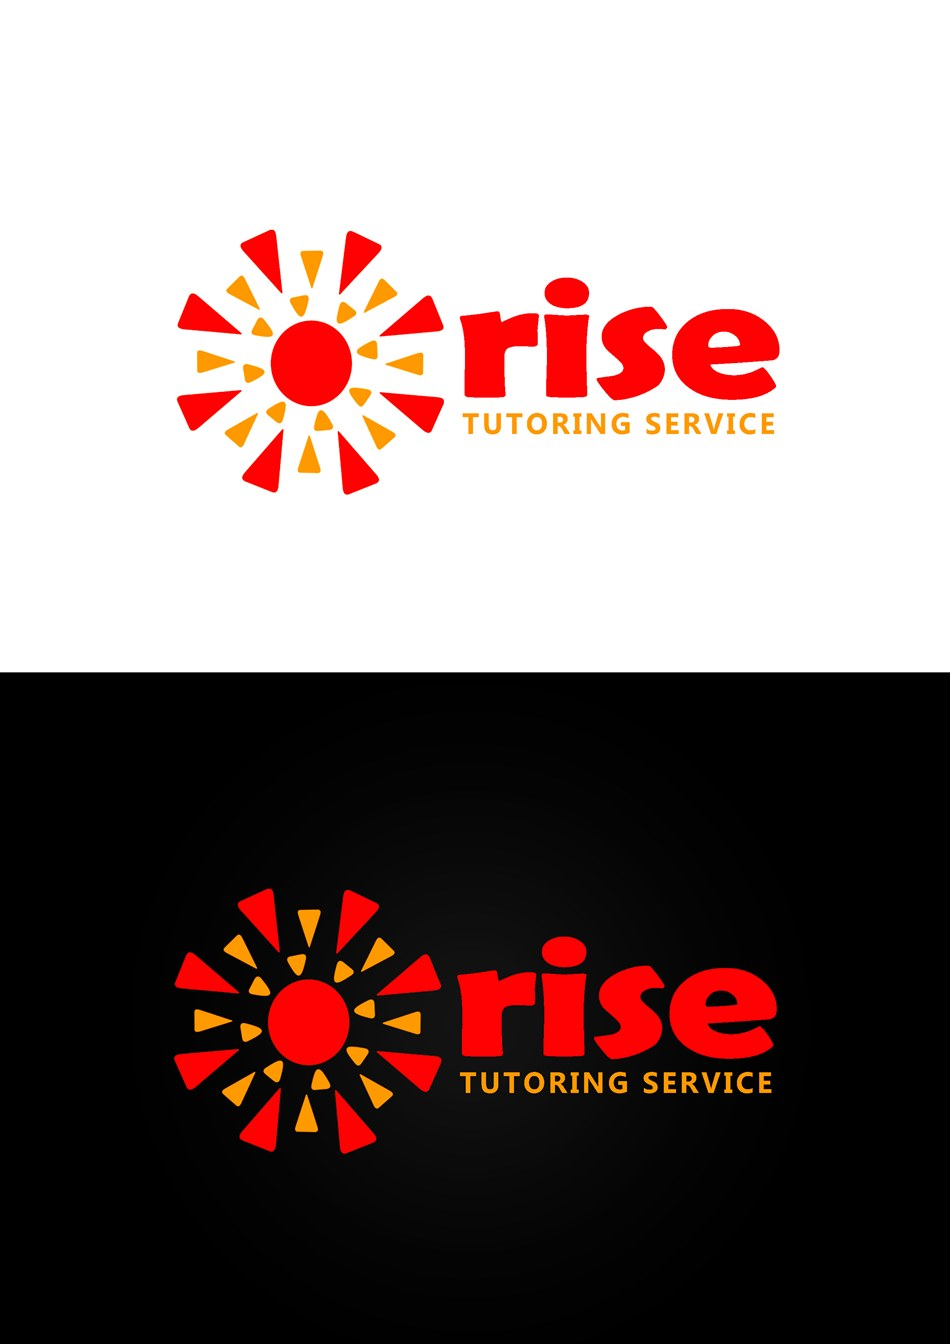 Logo Design by Respati Himawan - Entry No. 199 in the Logo Design Contest Imaginative Logo Design for Rise Tutoring Service.